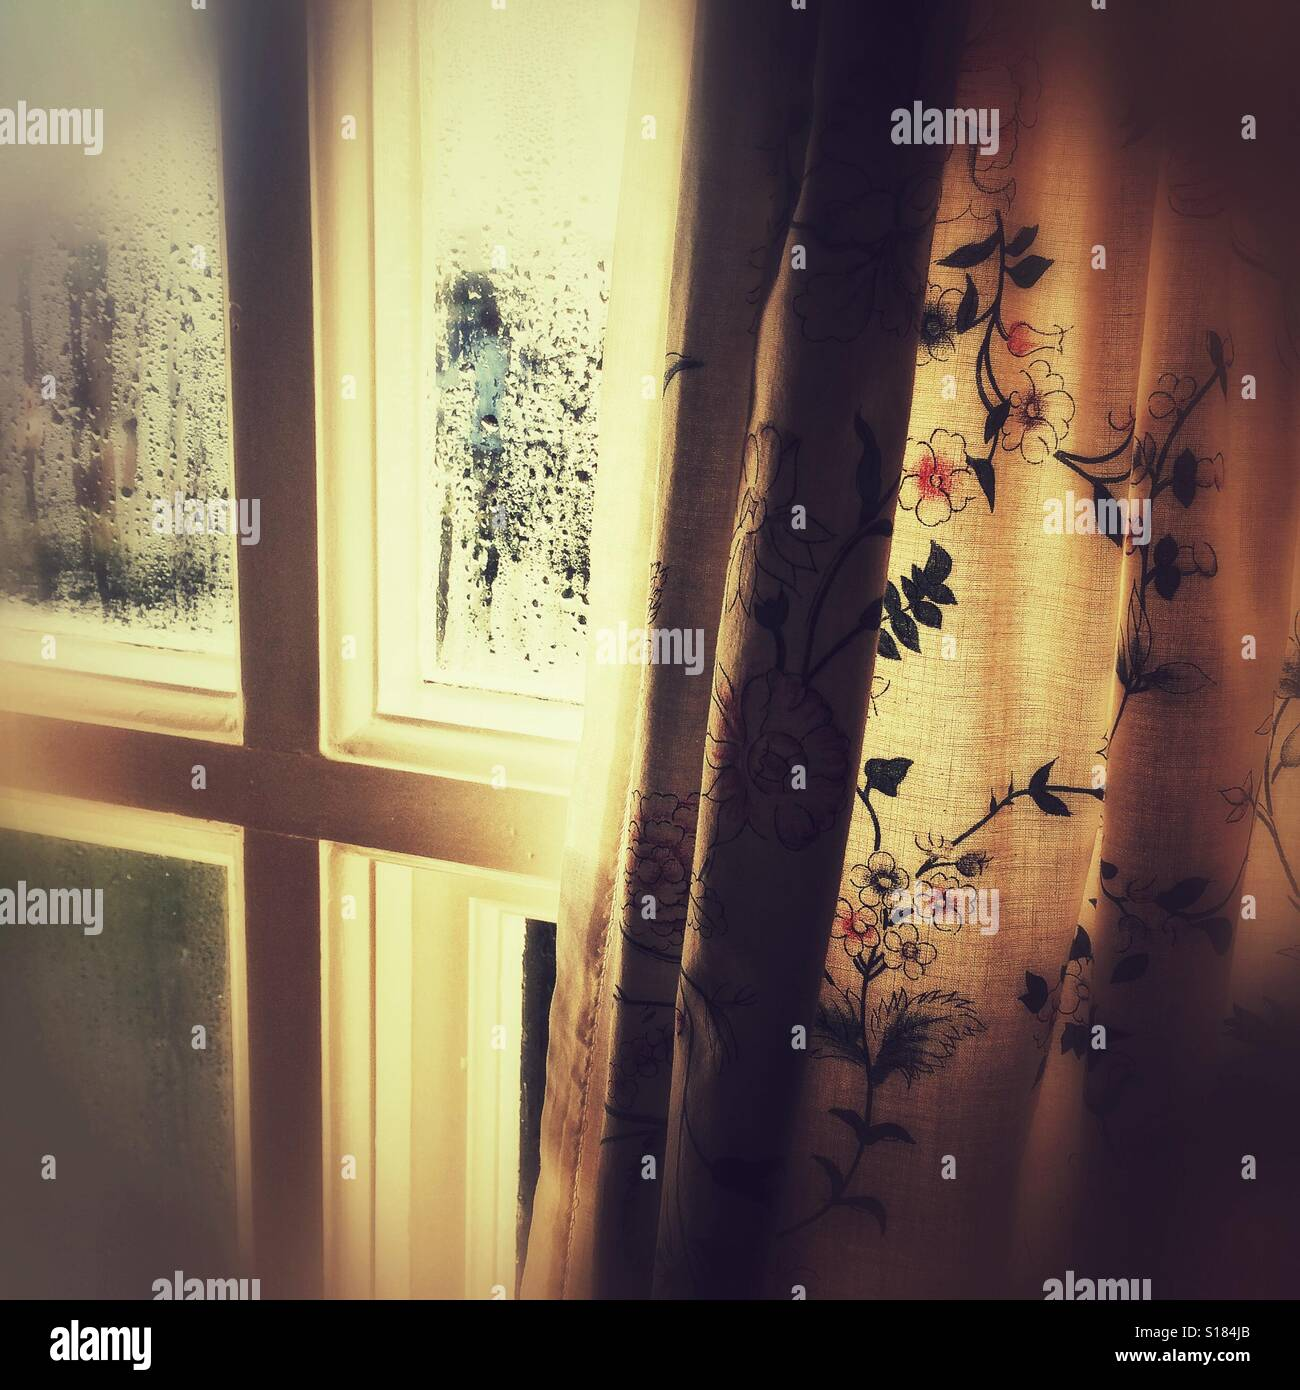 A steamy window and curtains - Stock Image